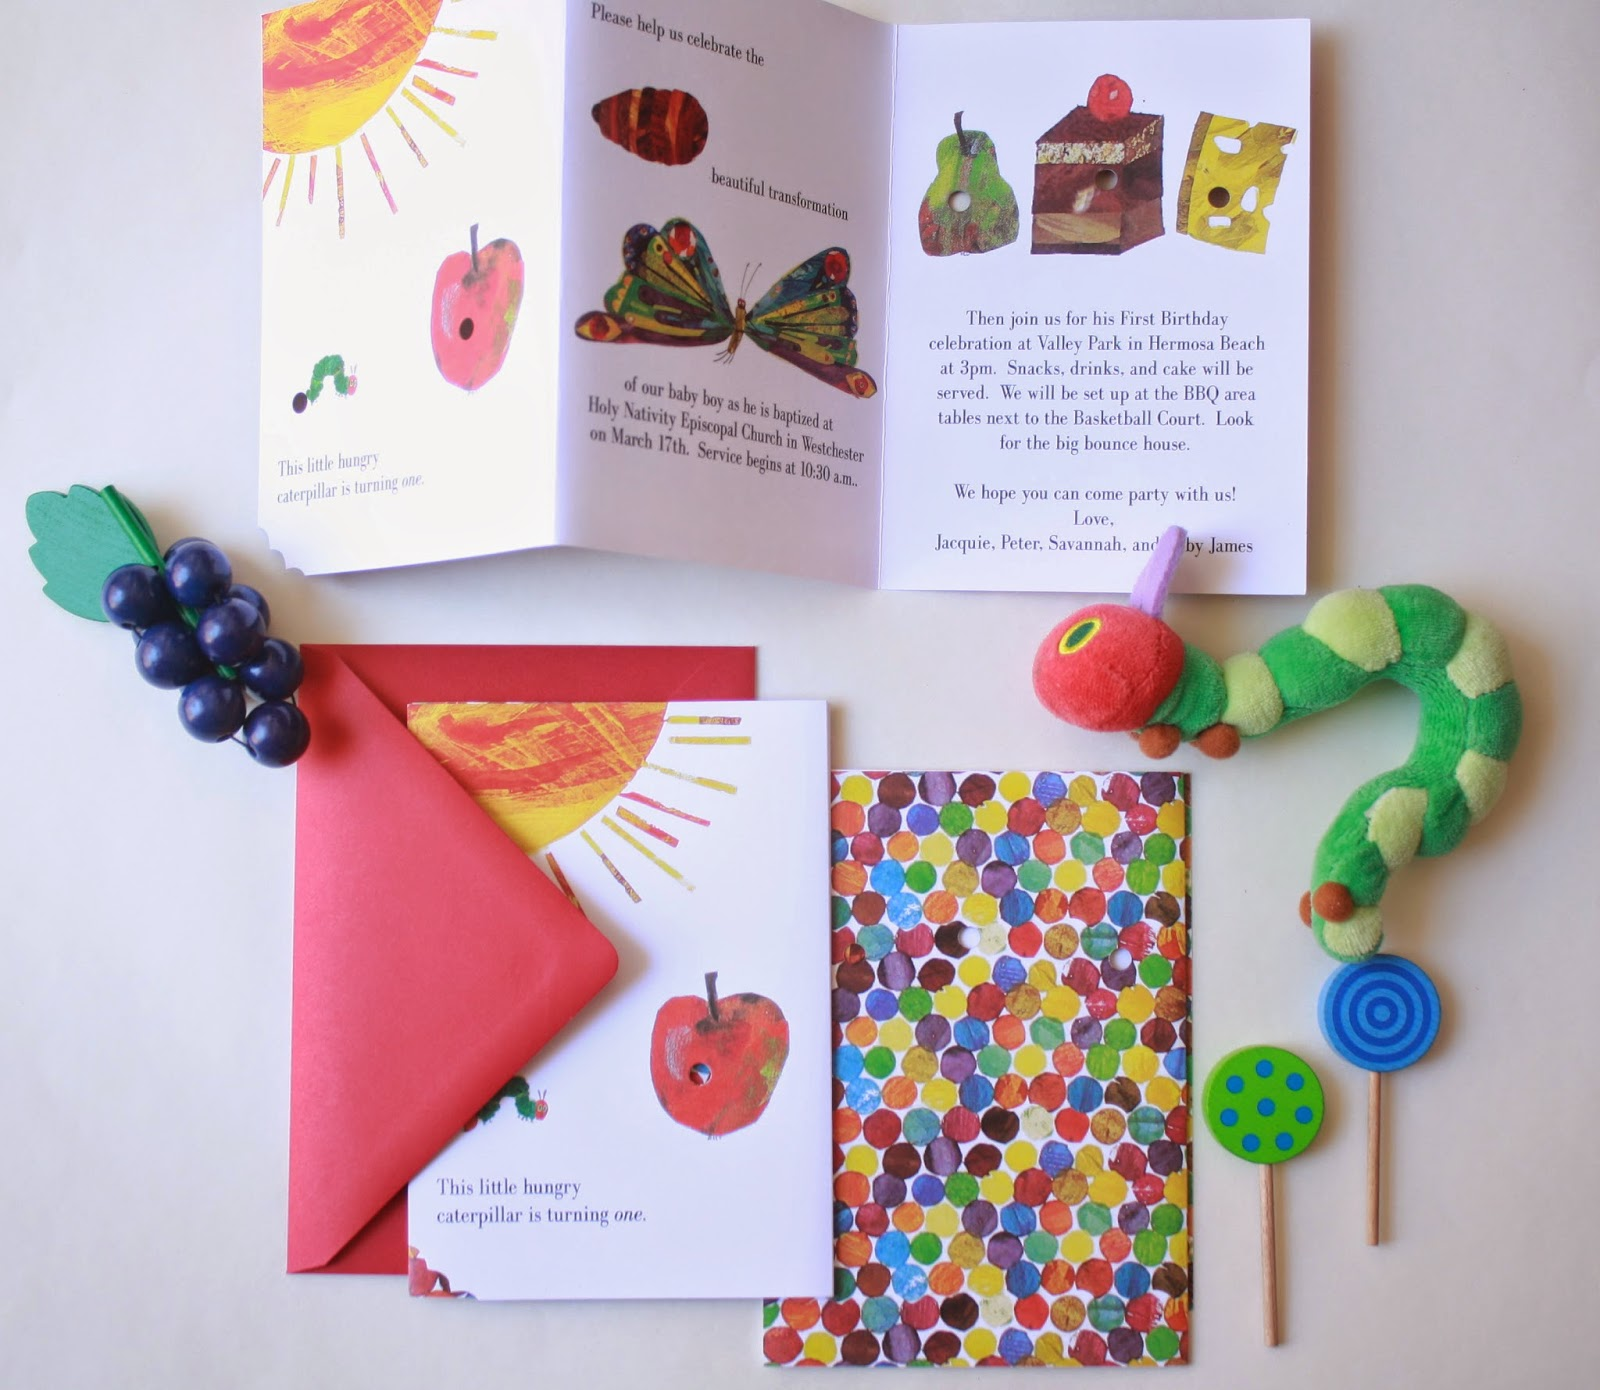 ERICA KEUTER DESIGNS: THE HUNGRY CATERPILLAR BIRTHDAY INVITATION